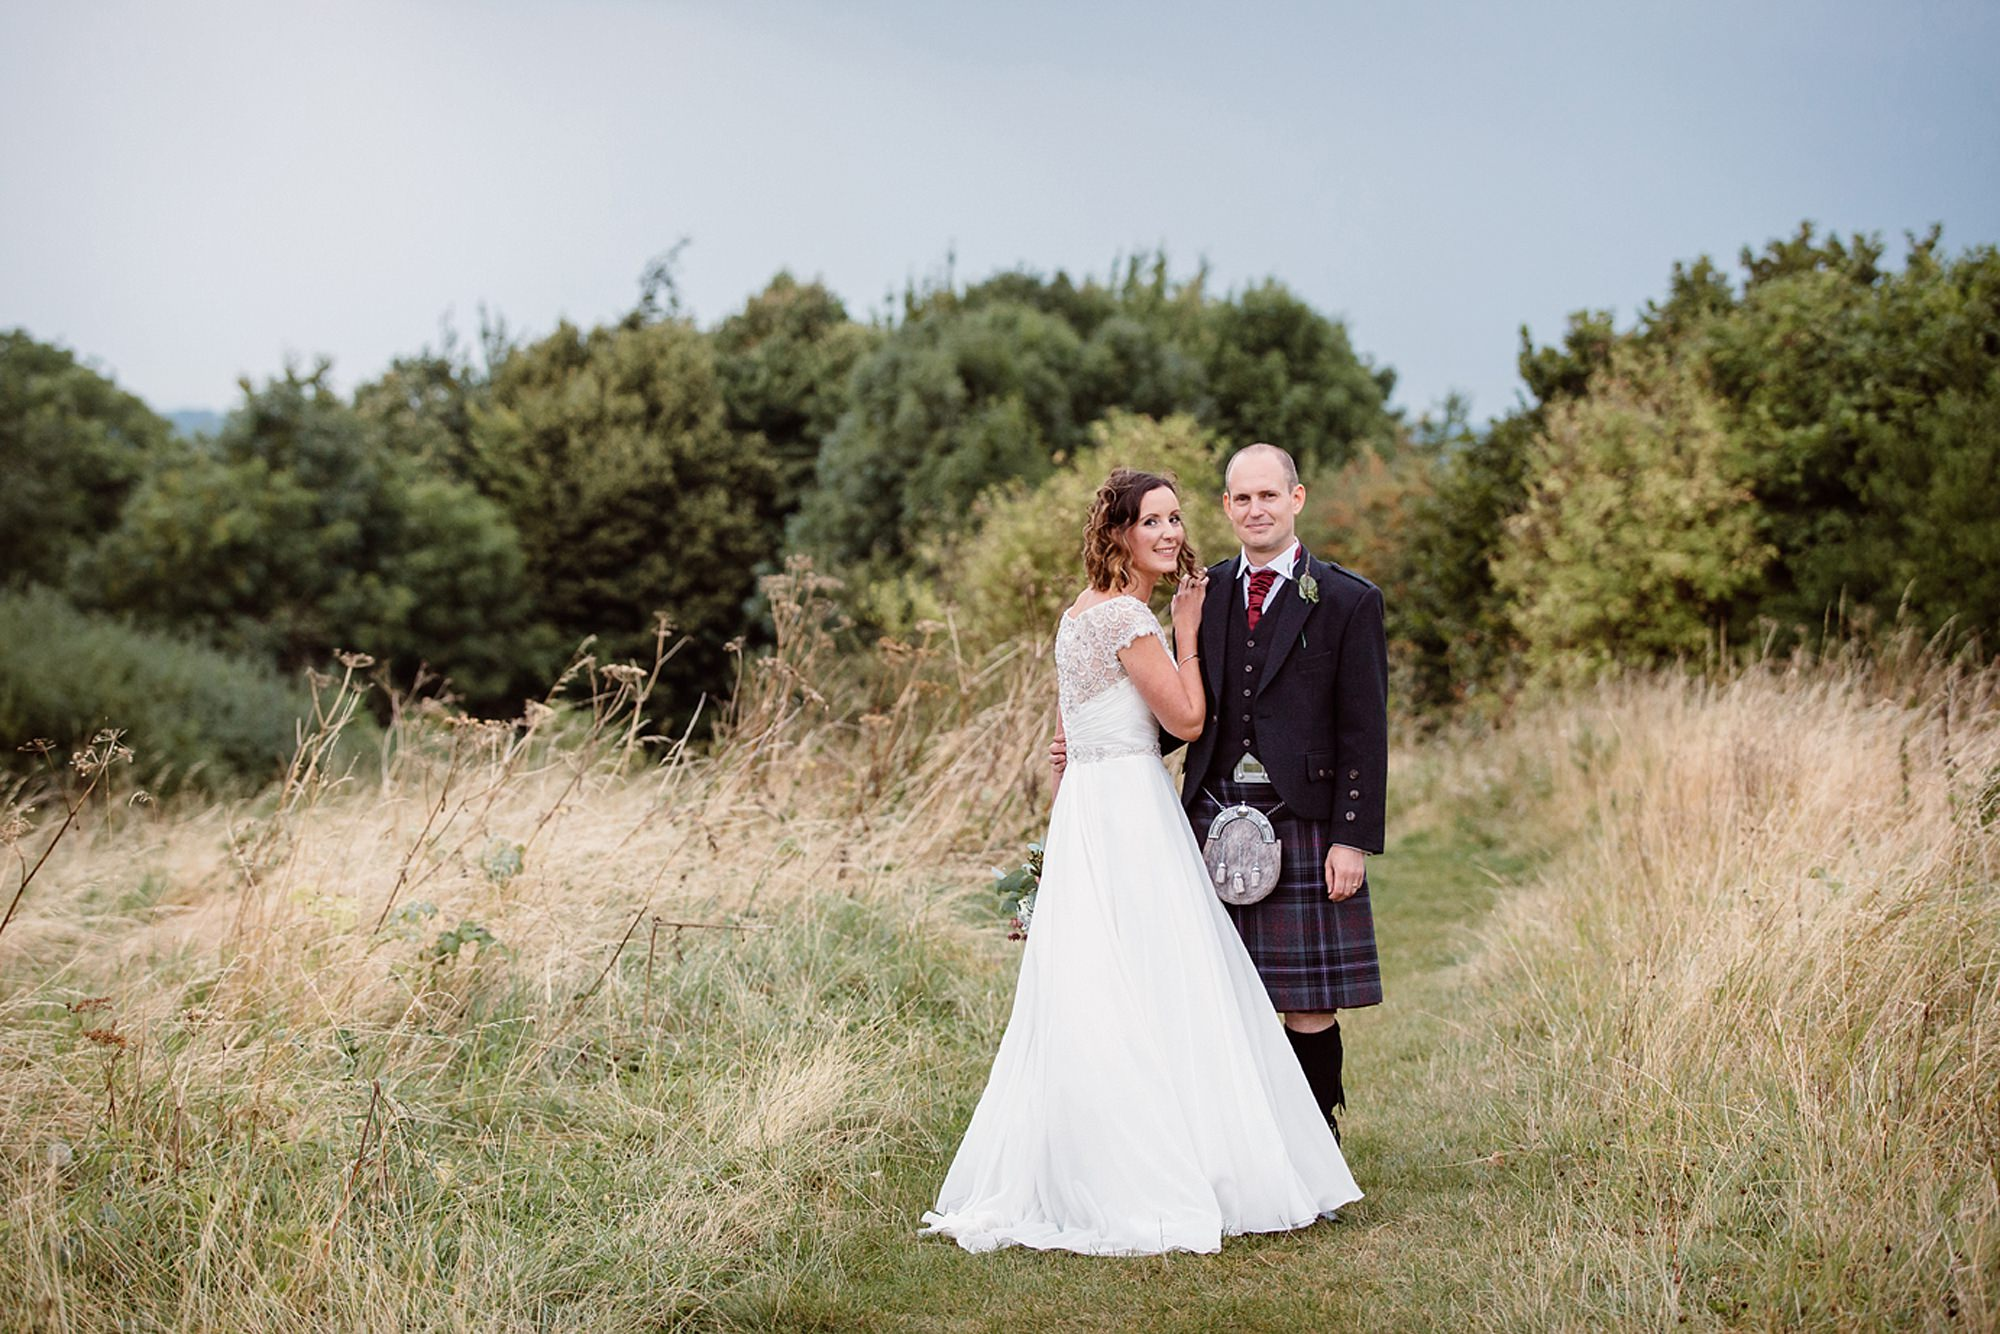 outdoor humanist wedding photography bride ad groom together